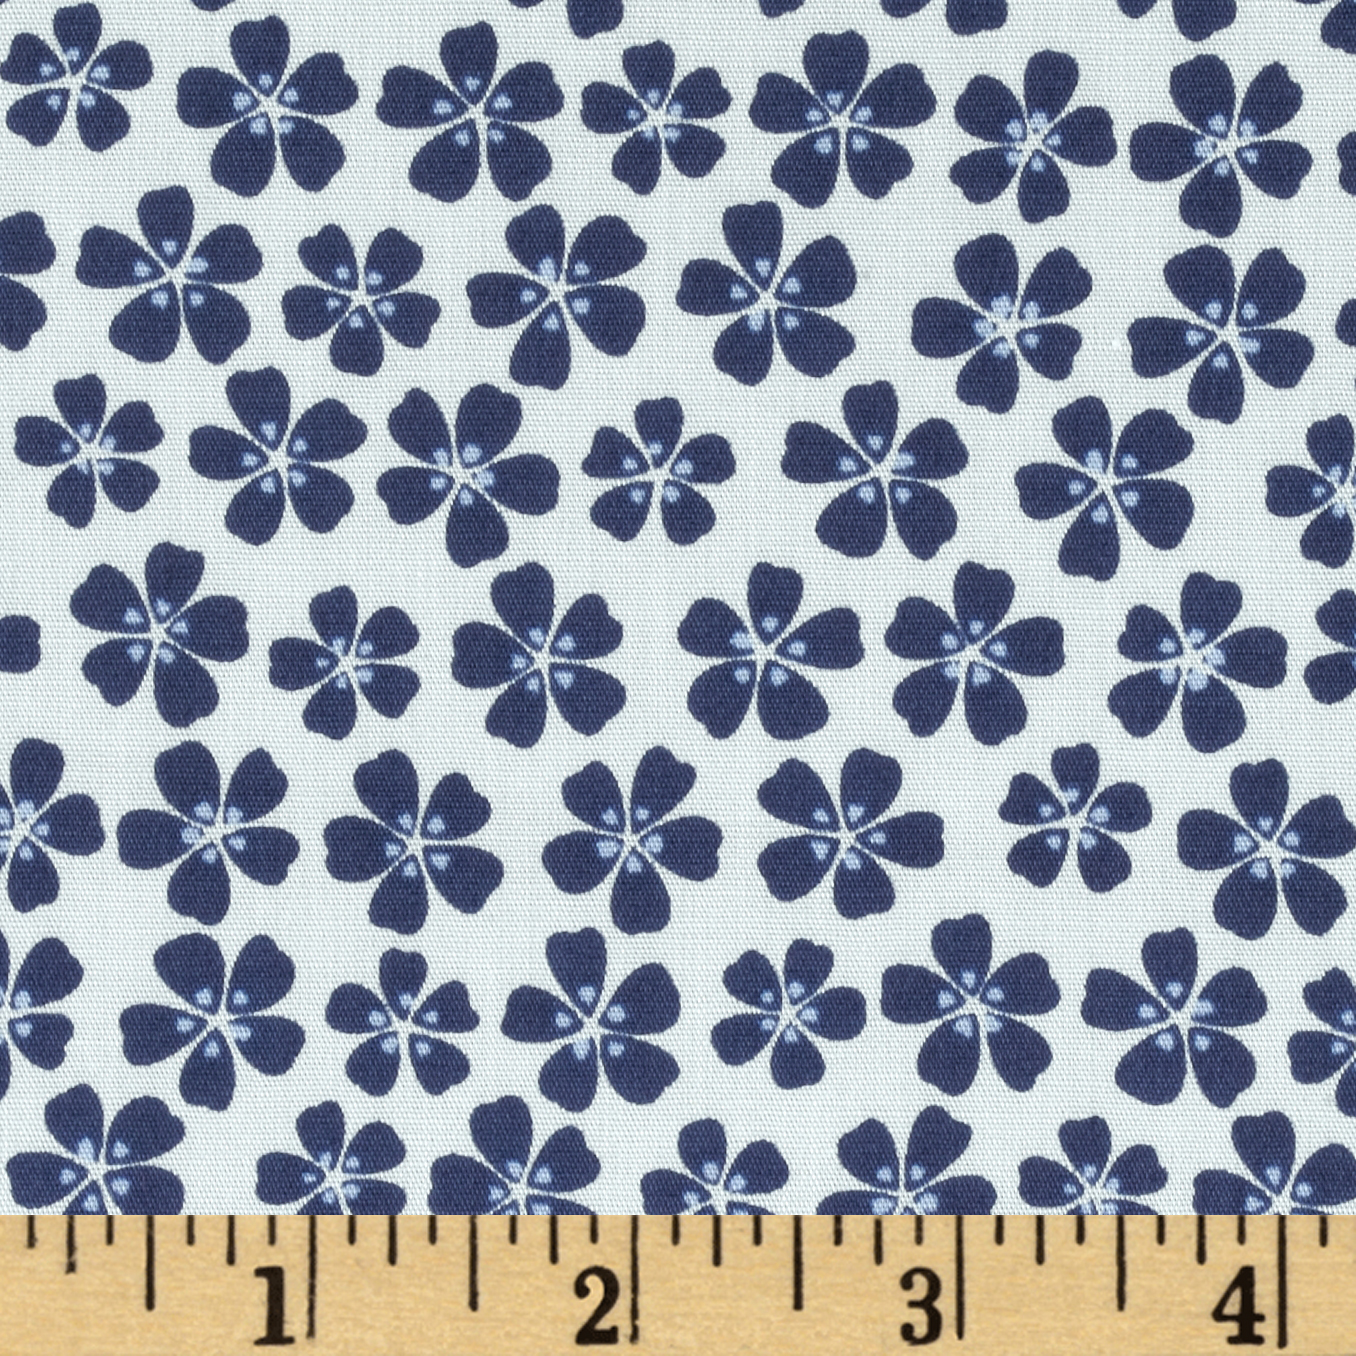 Morocco Blues Stretch Poplin Floral White Fabric